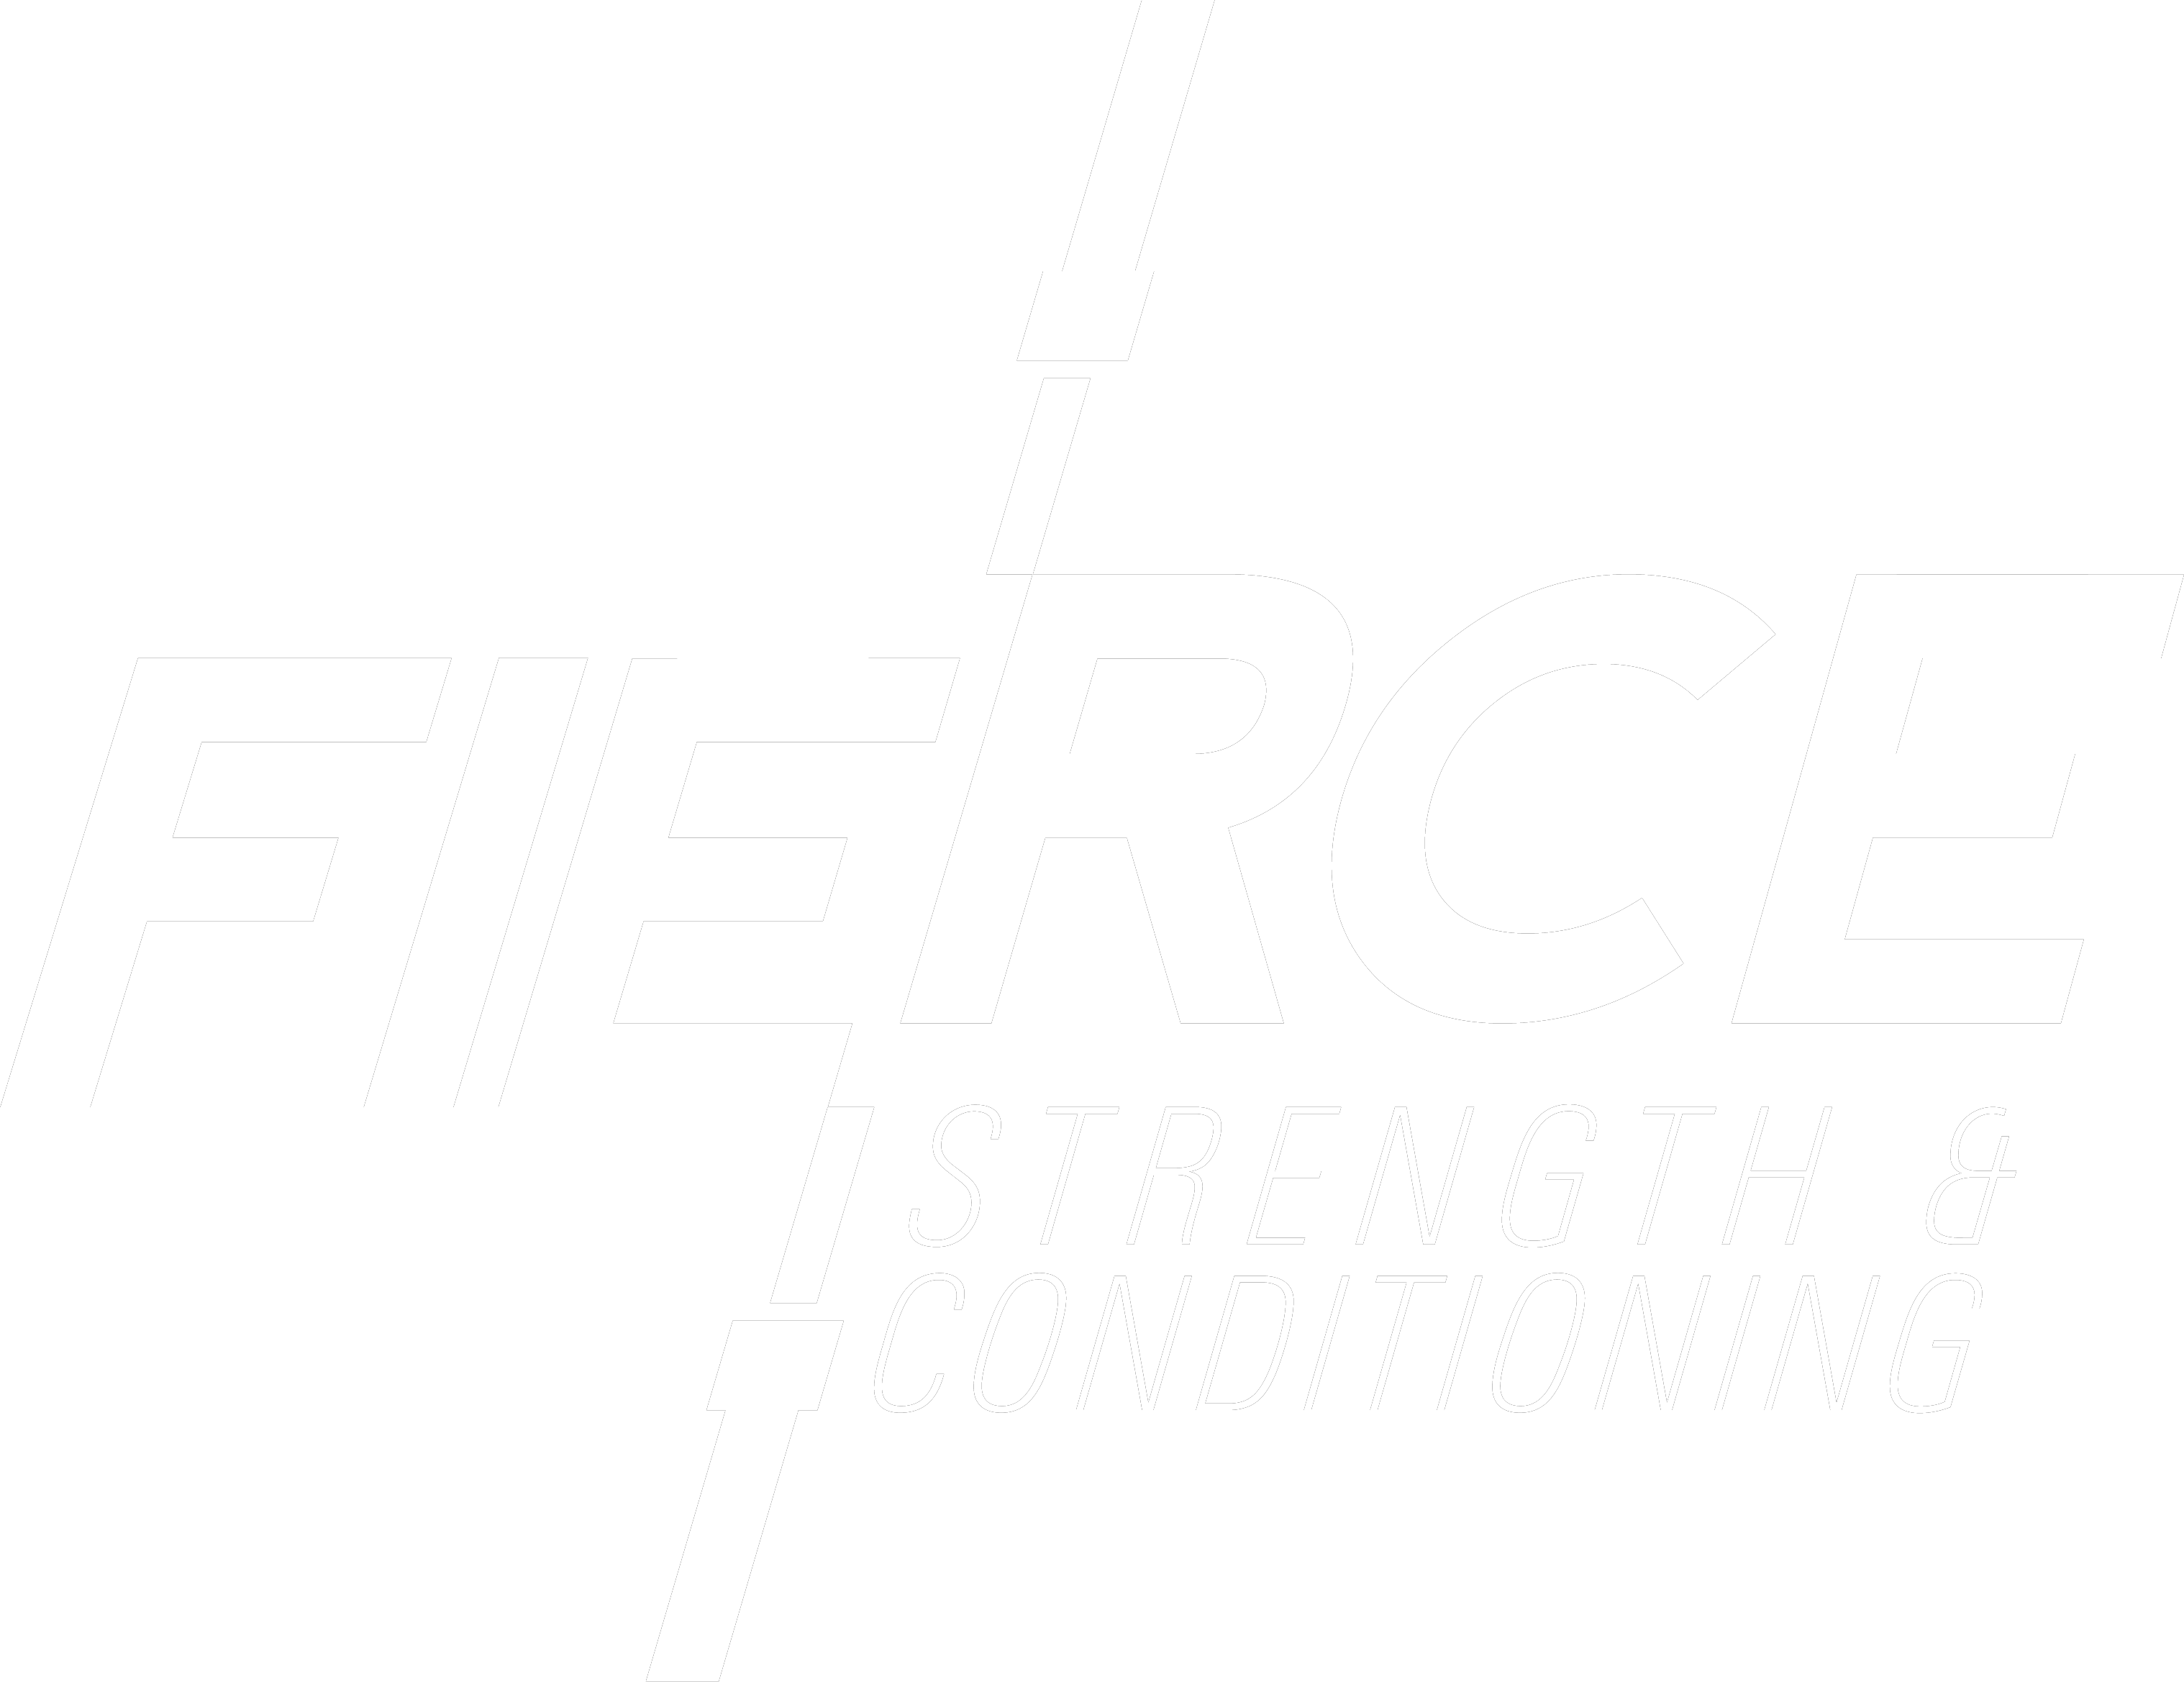 Fierce Strength & Conditioning